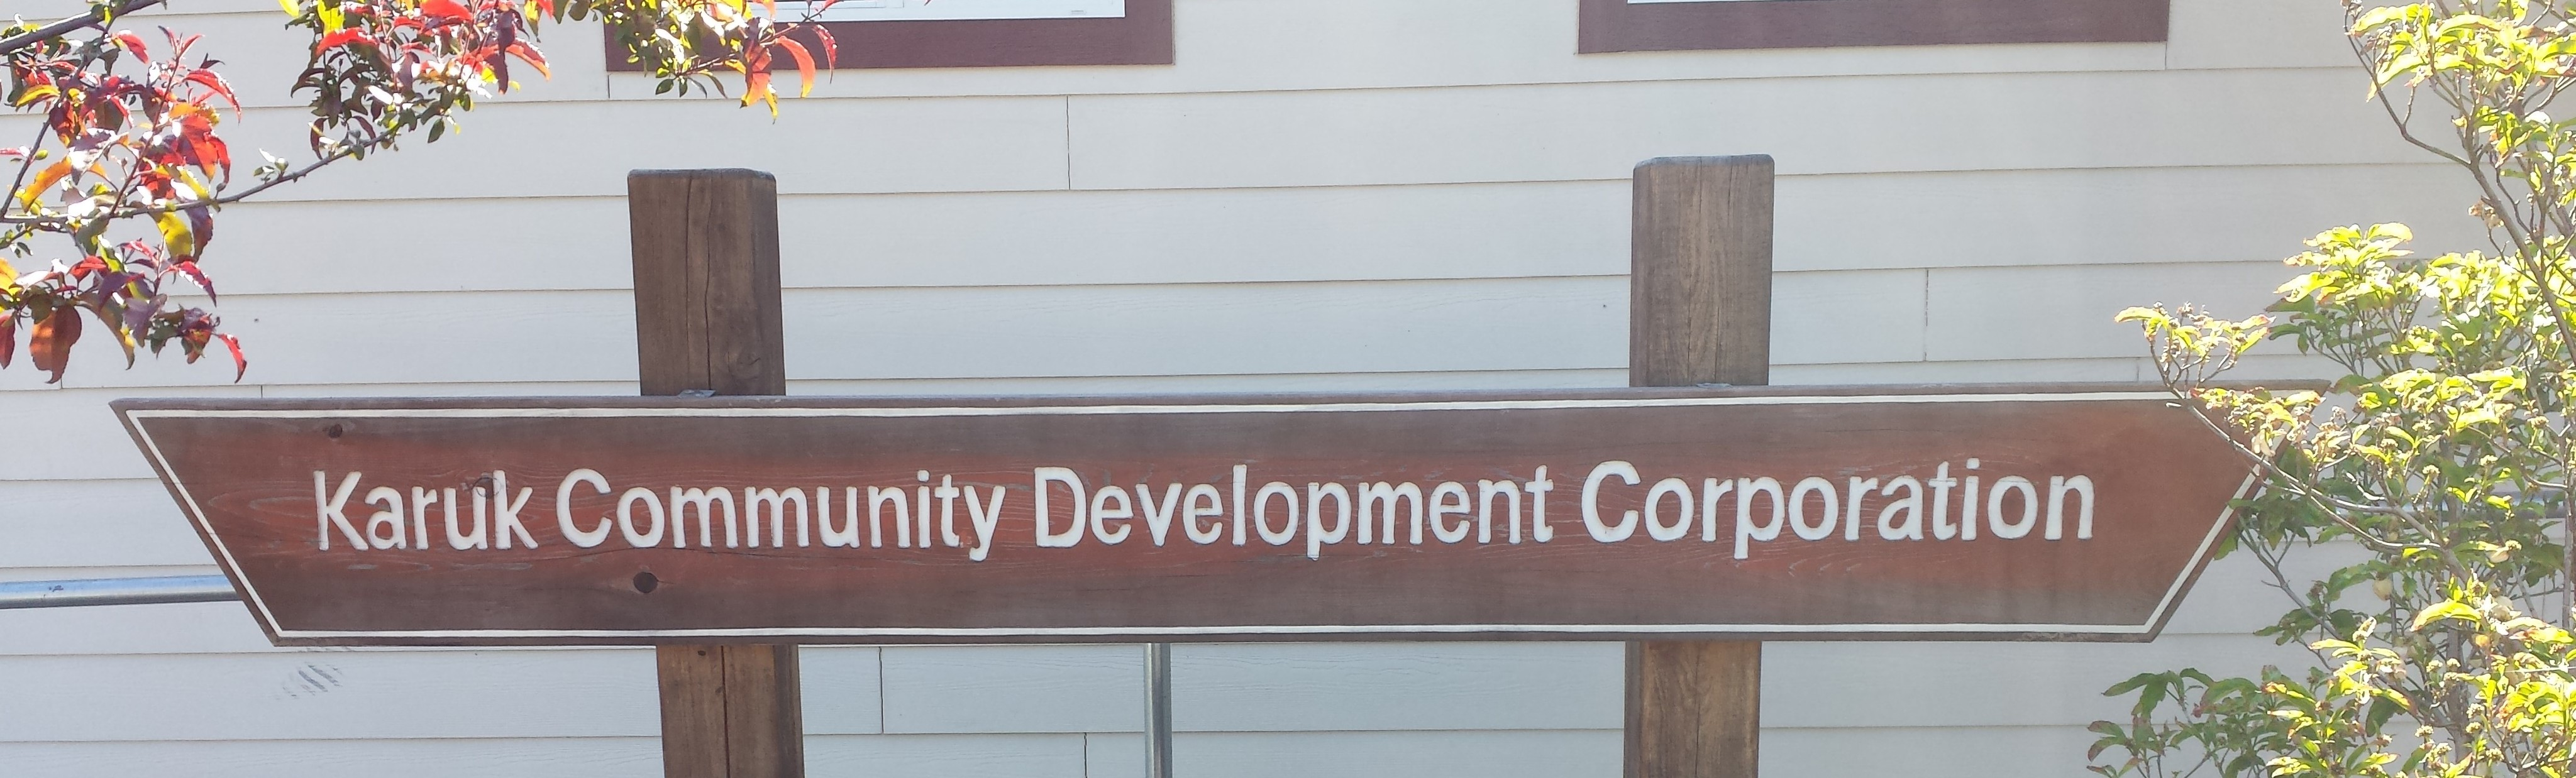 kcdc sign